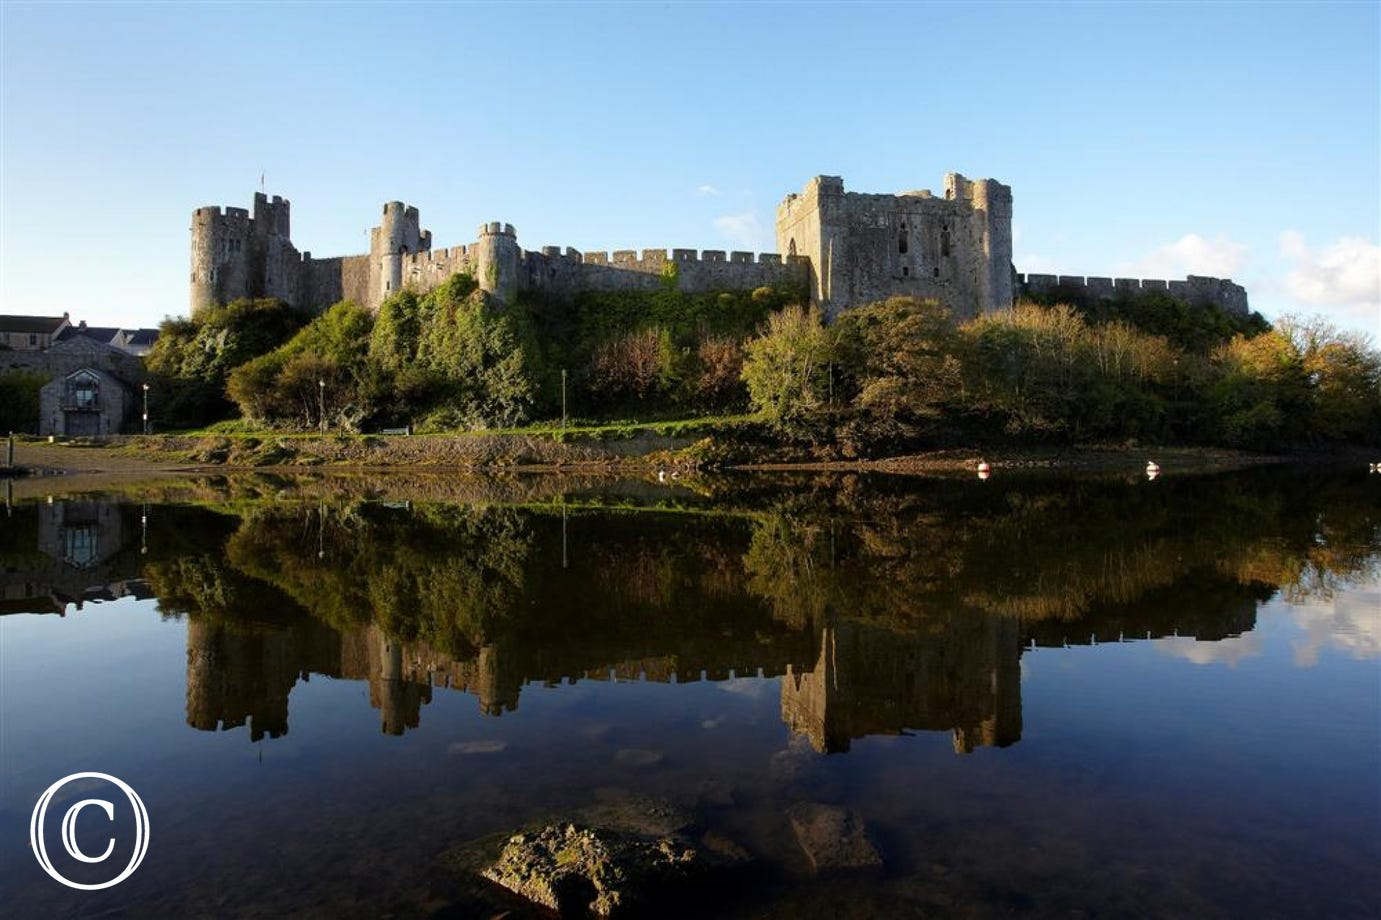 Pembroke Castle, which is just down the road, birthplace of Henry VII